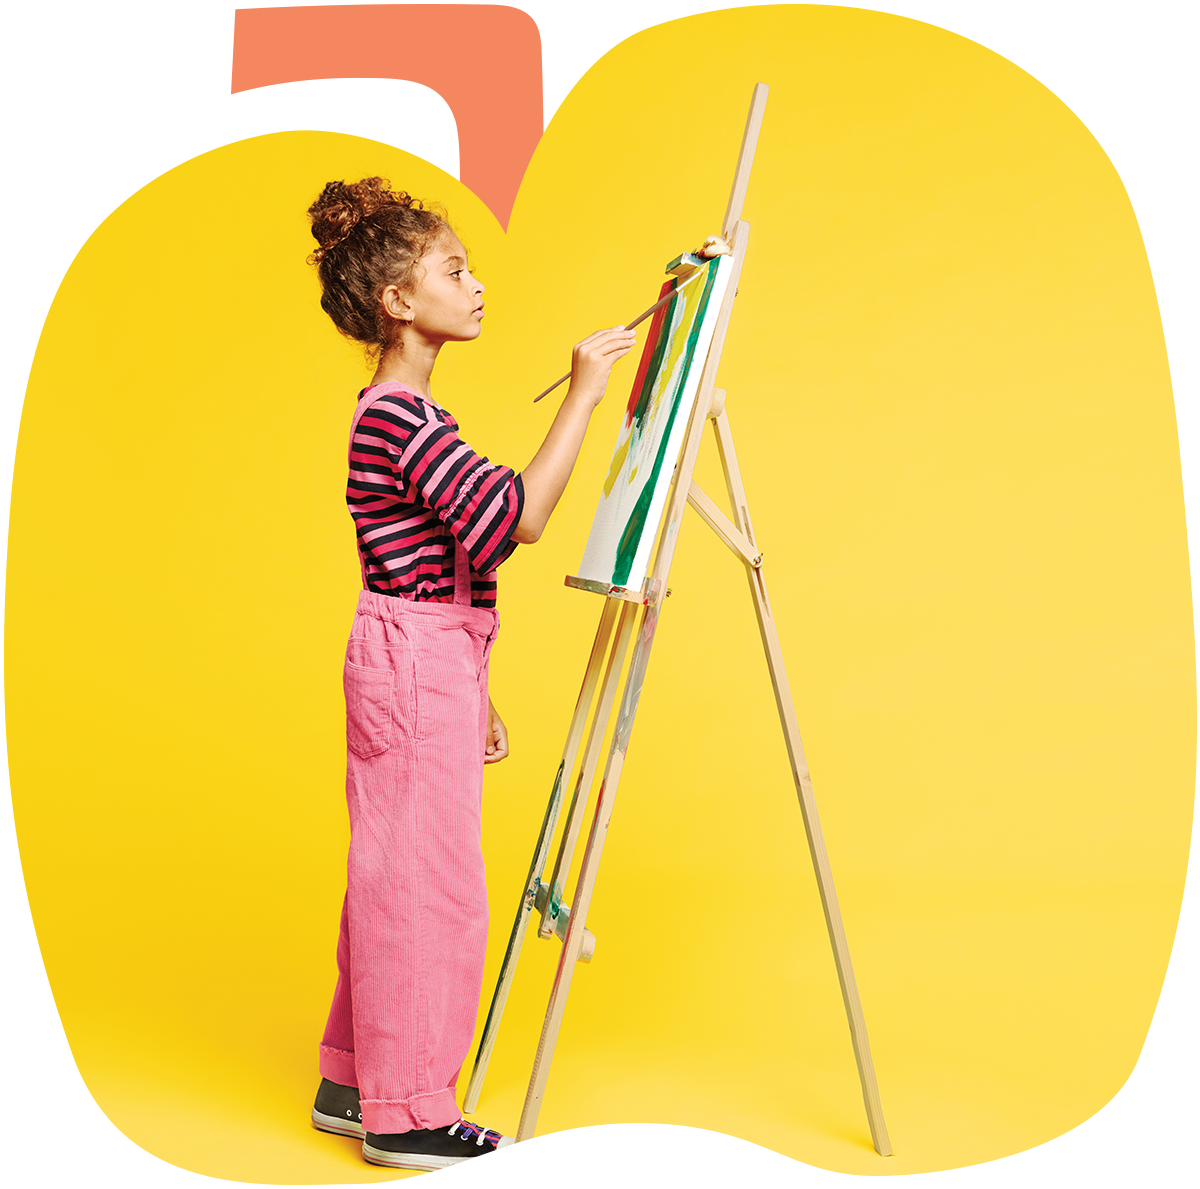 A young girl creating art on an easel in the background of an animated image of an apple